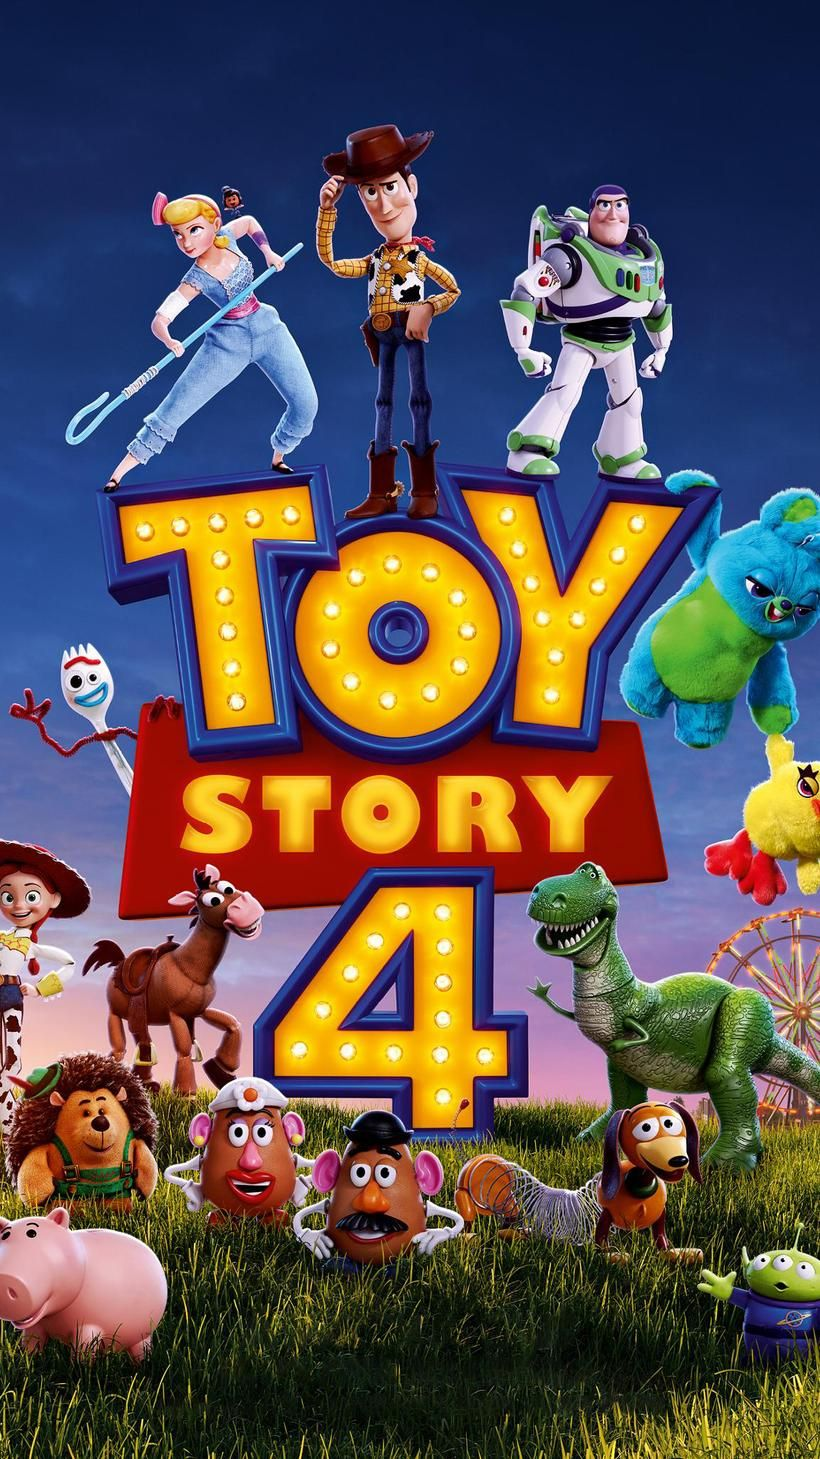 Download Toy Story Wallpaper Hd Backgrounds Download Itl Cat